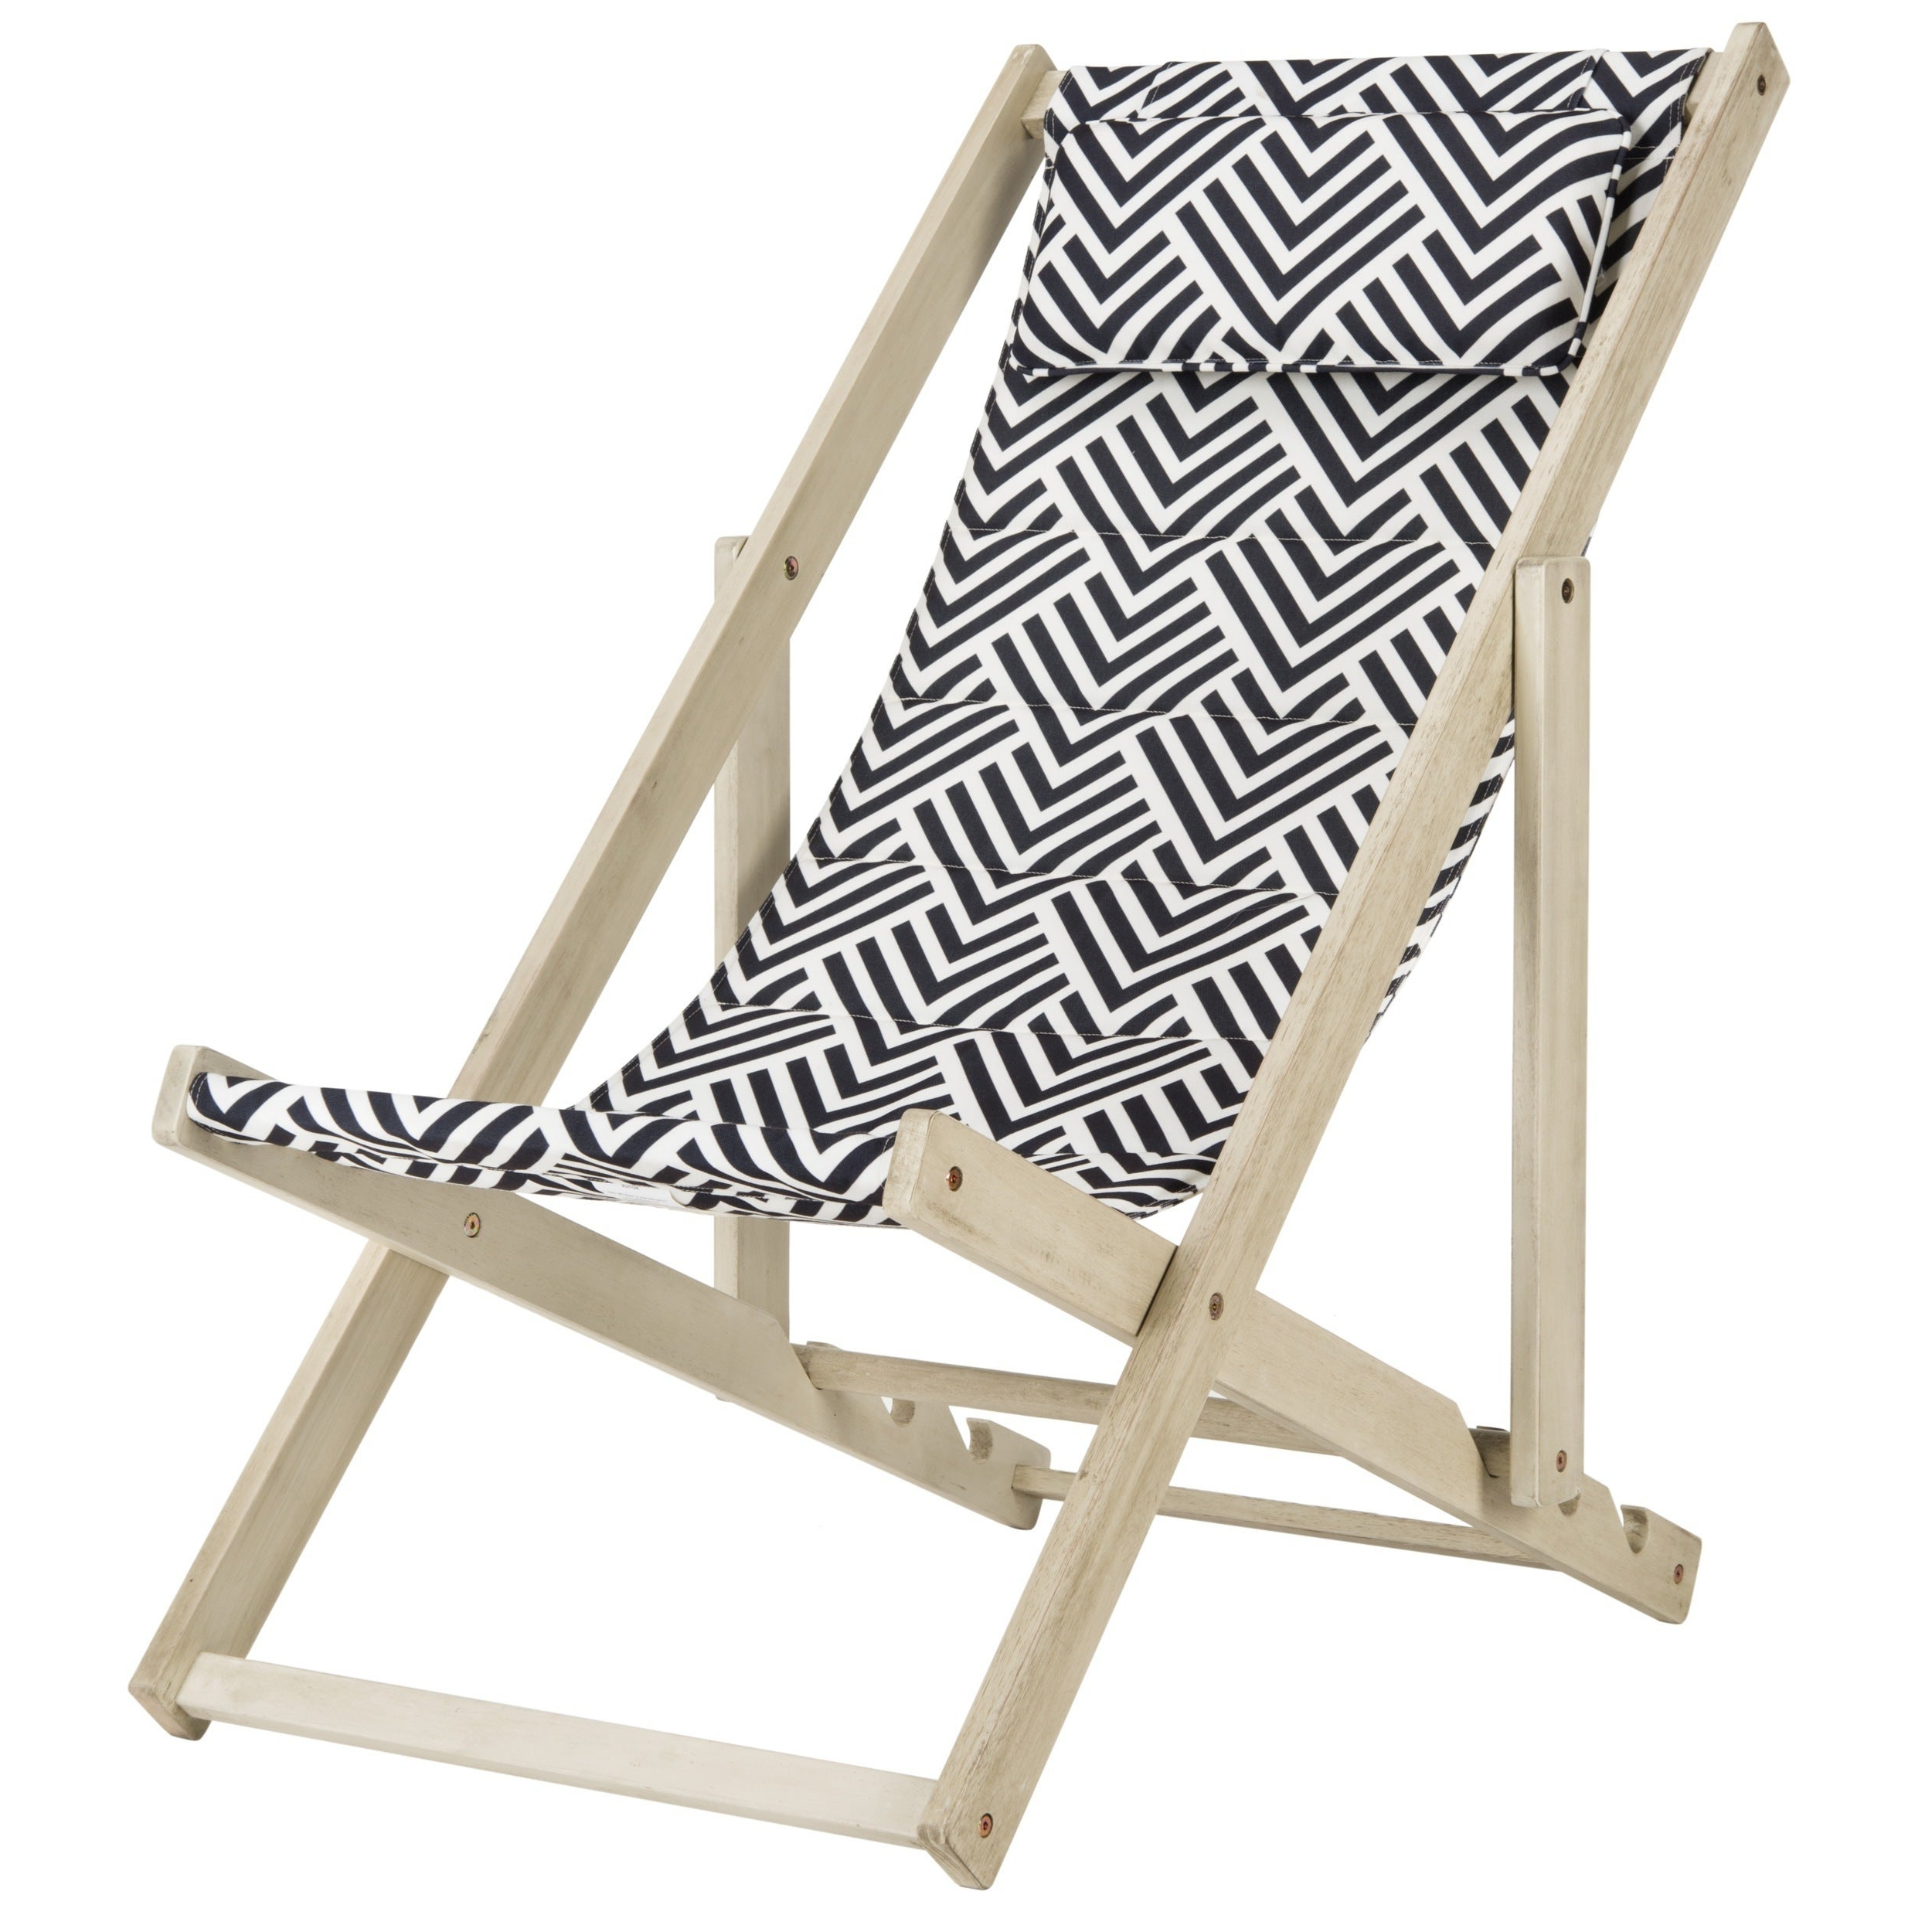 Outdoor Wood Sling Chairs Throughout Preferred Safavieh Outdoor Living Rive White Wash/ Navy Foldable Sling Chair (View 16 of 25)